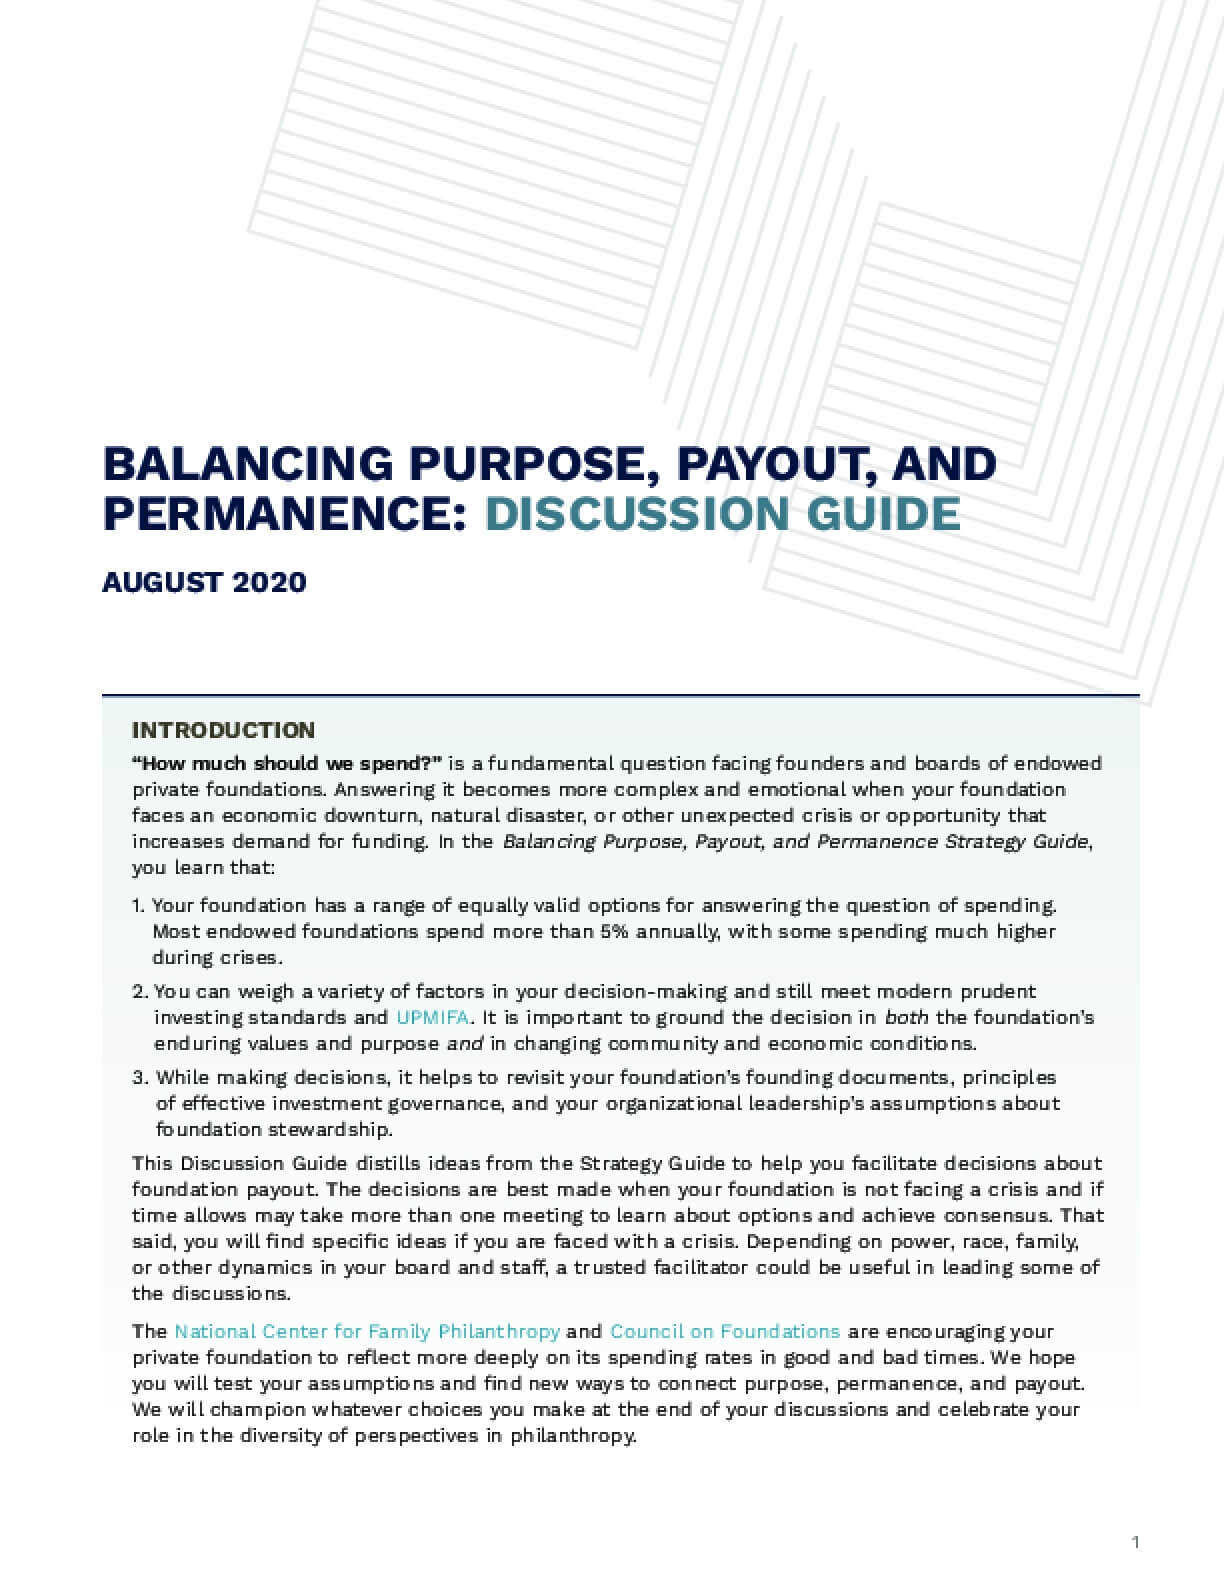 Balancing Purpose, Payout, and Permanence Discussion Guide